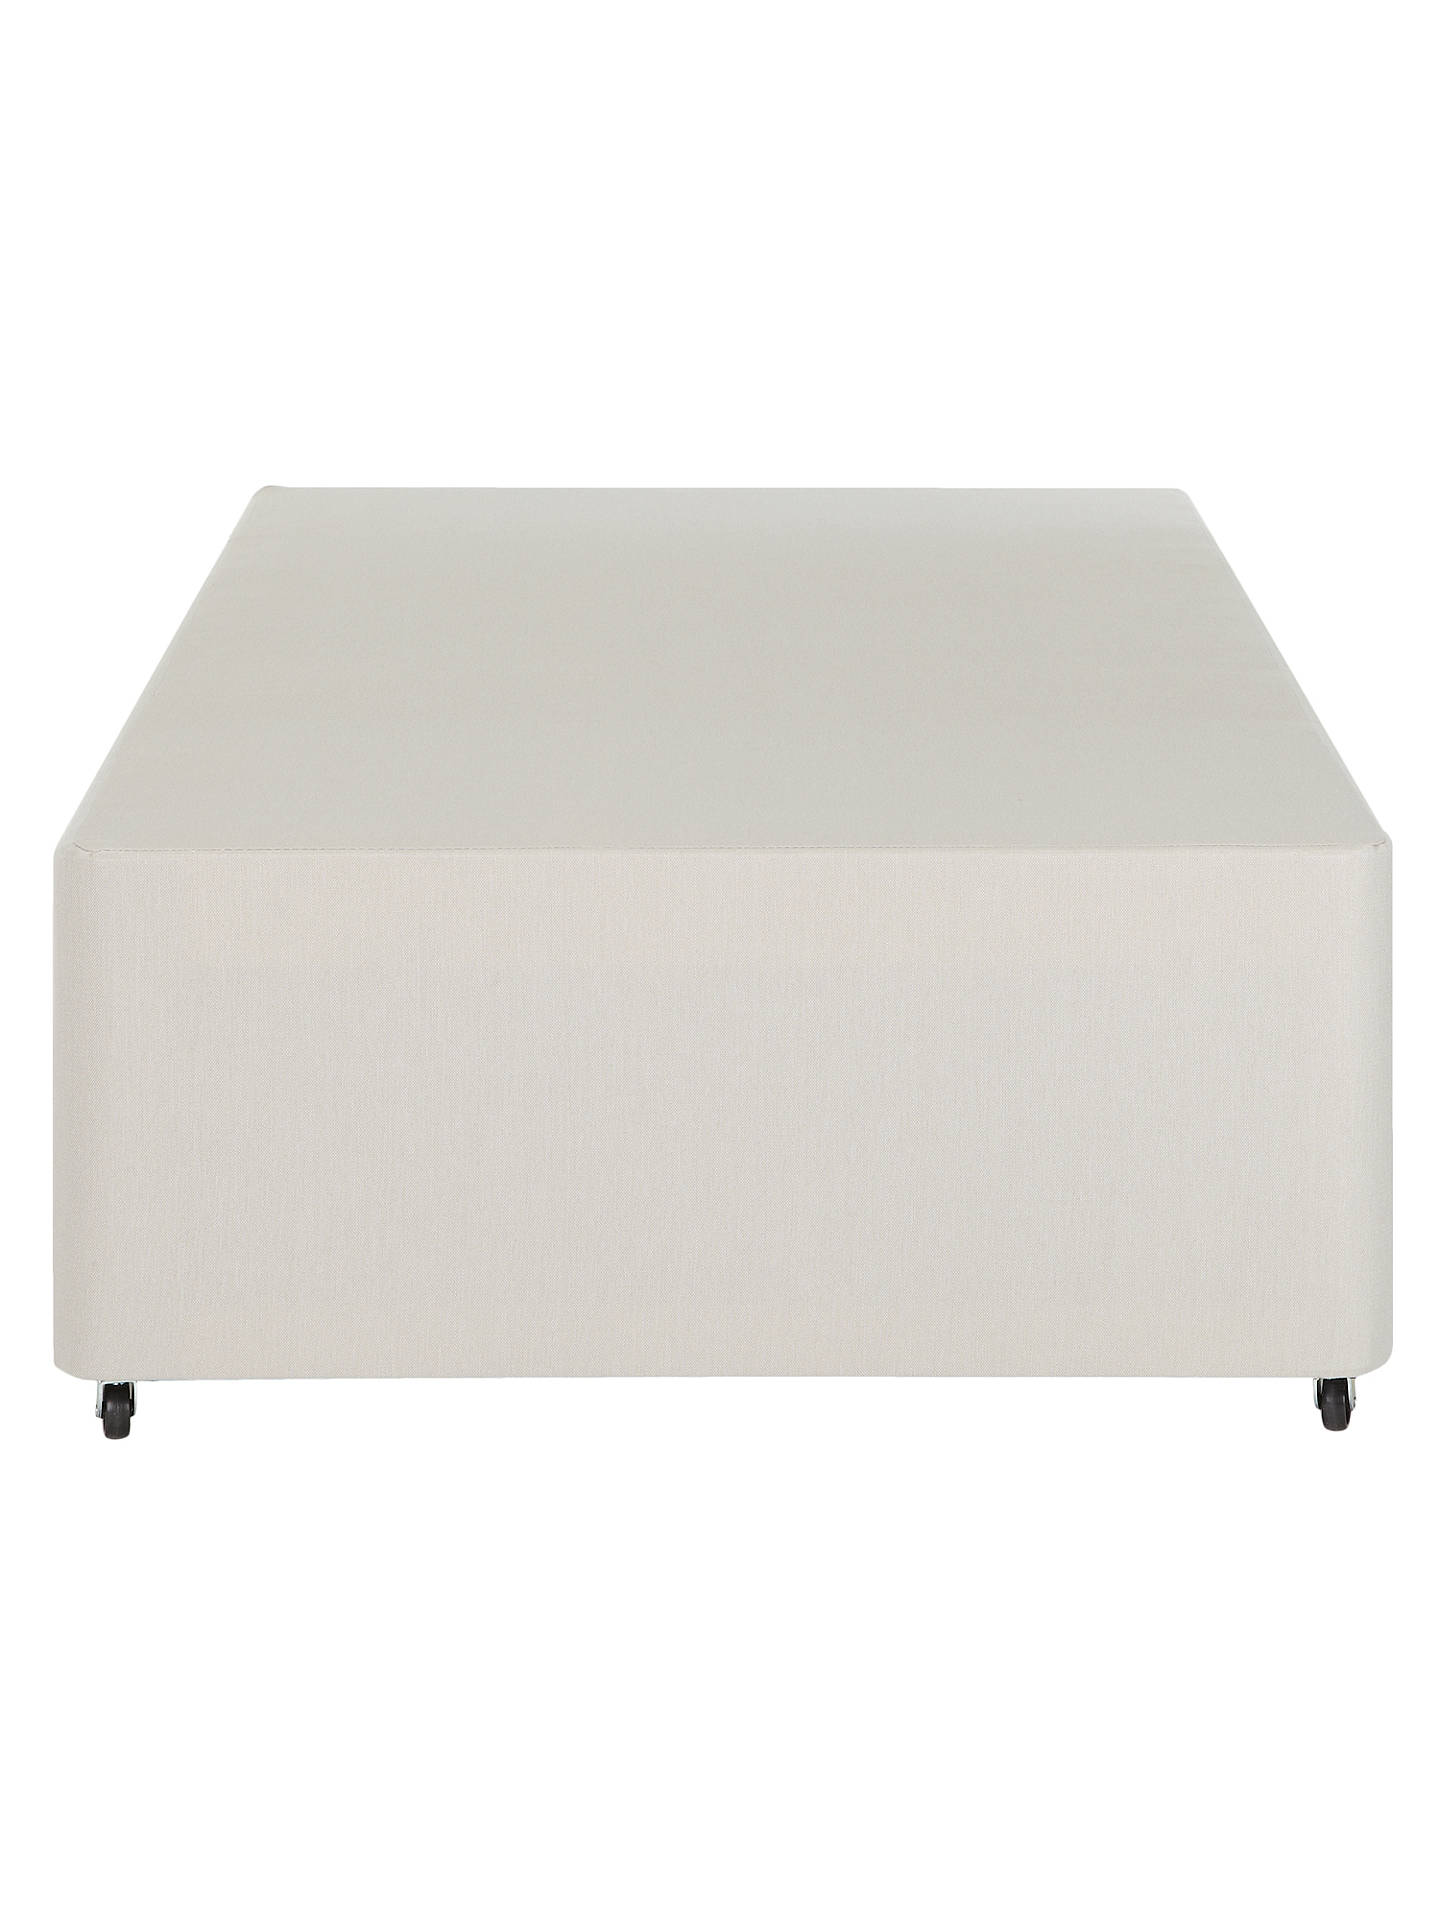 BuyJohn Lewis & Partners Non-Sprung Two Drawer Divan Storage Bed, Pebble, Single Online at johnlewis.com